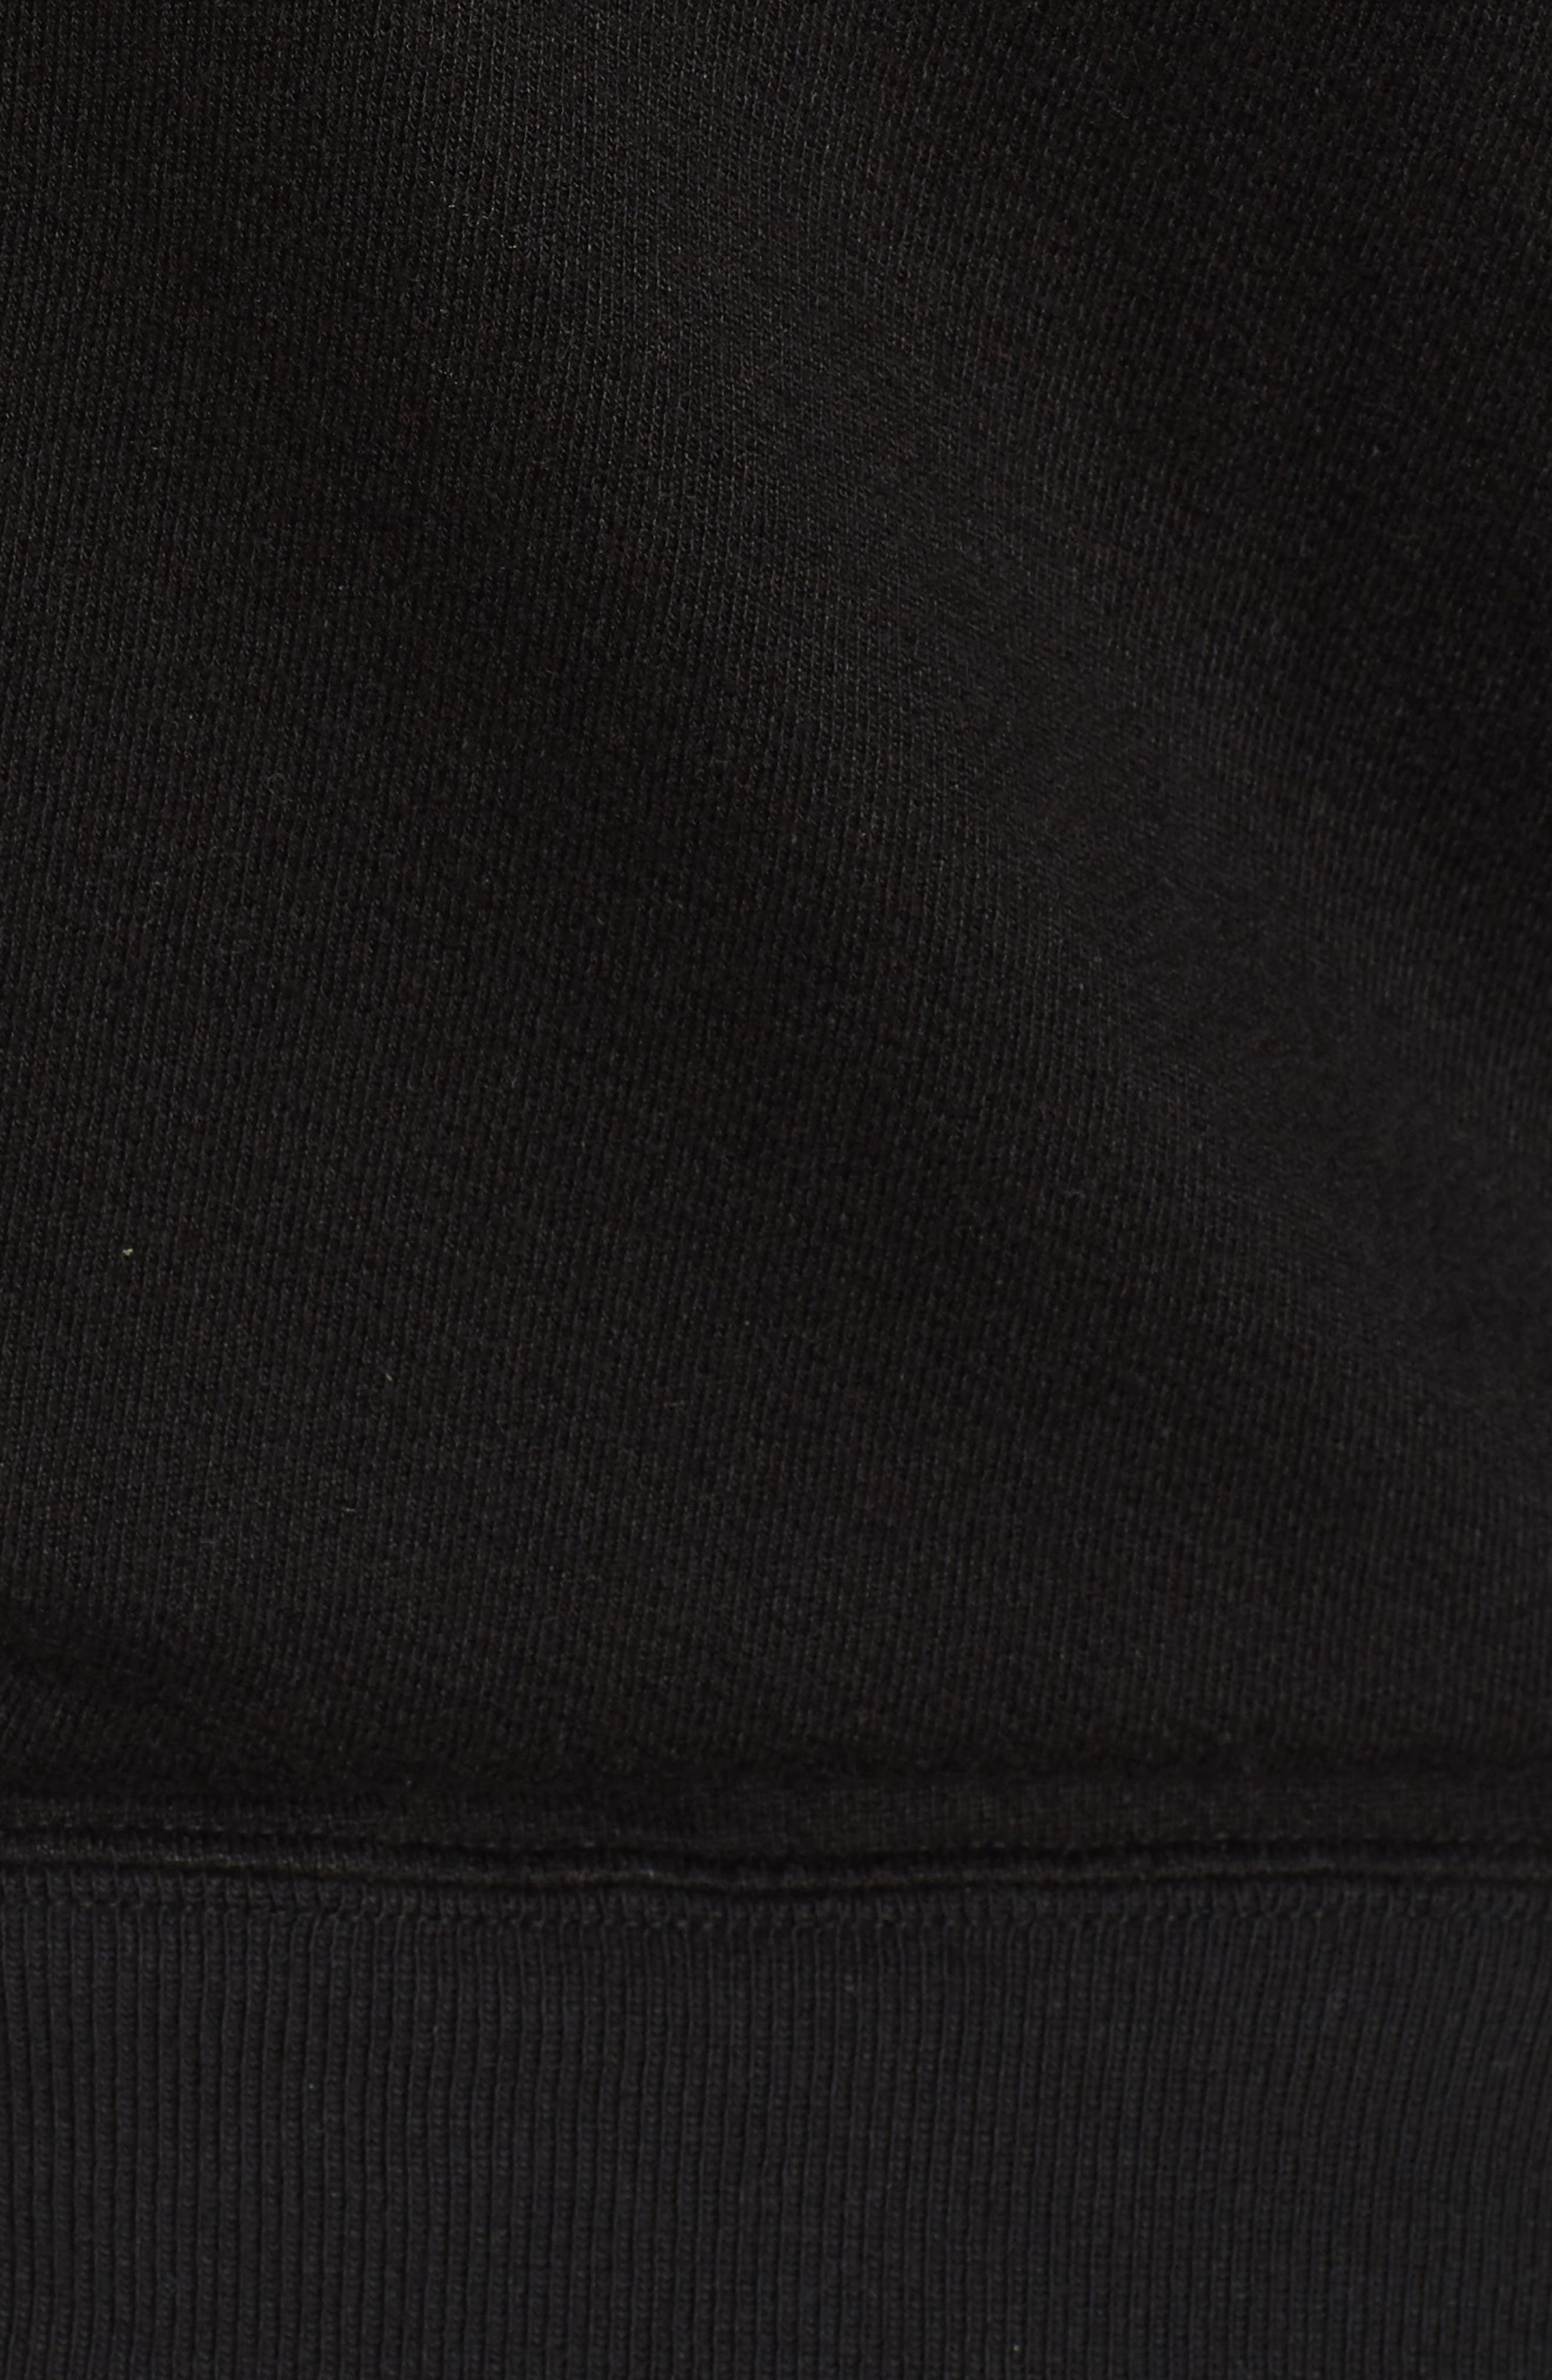 Mayer V-Neck Sweatshirt,                             Alternate thumbnail 5, color,                             Black Cat